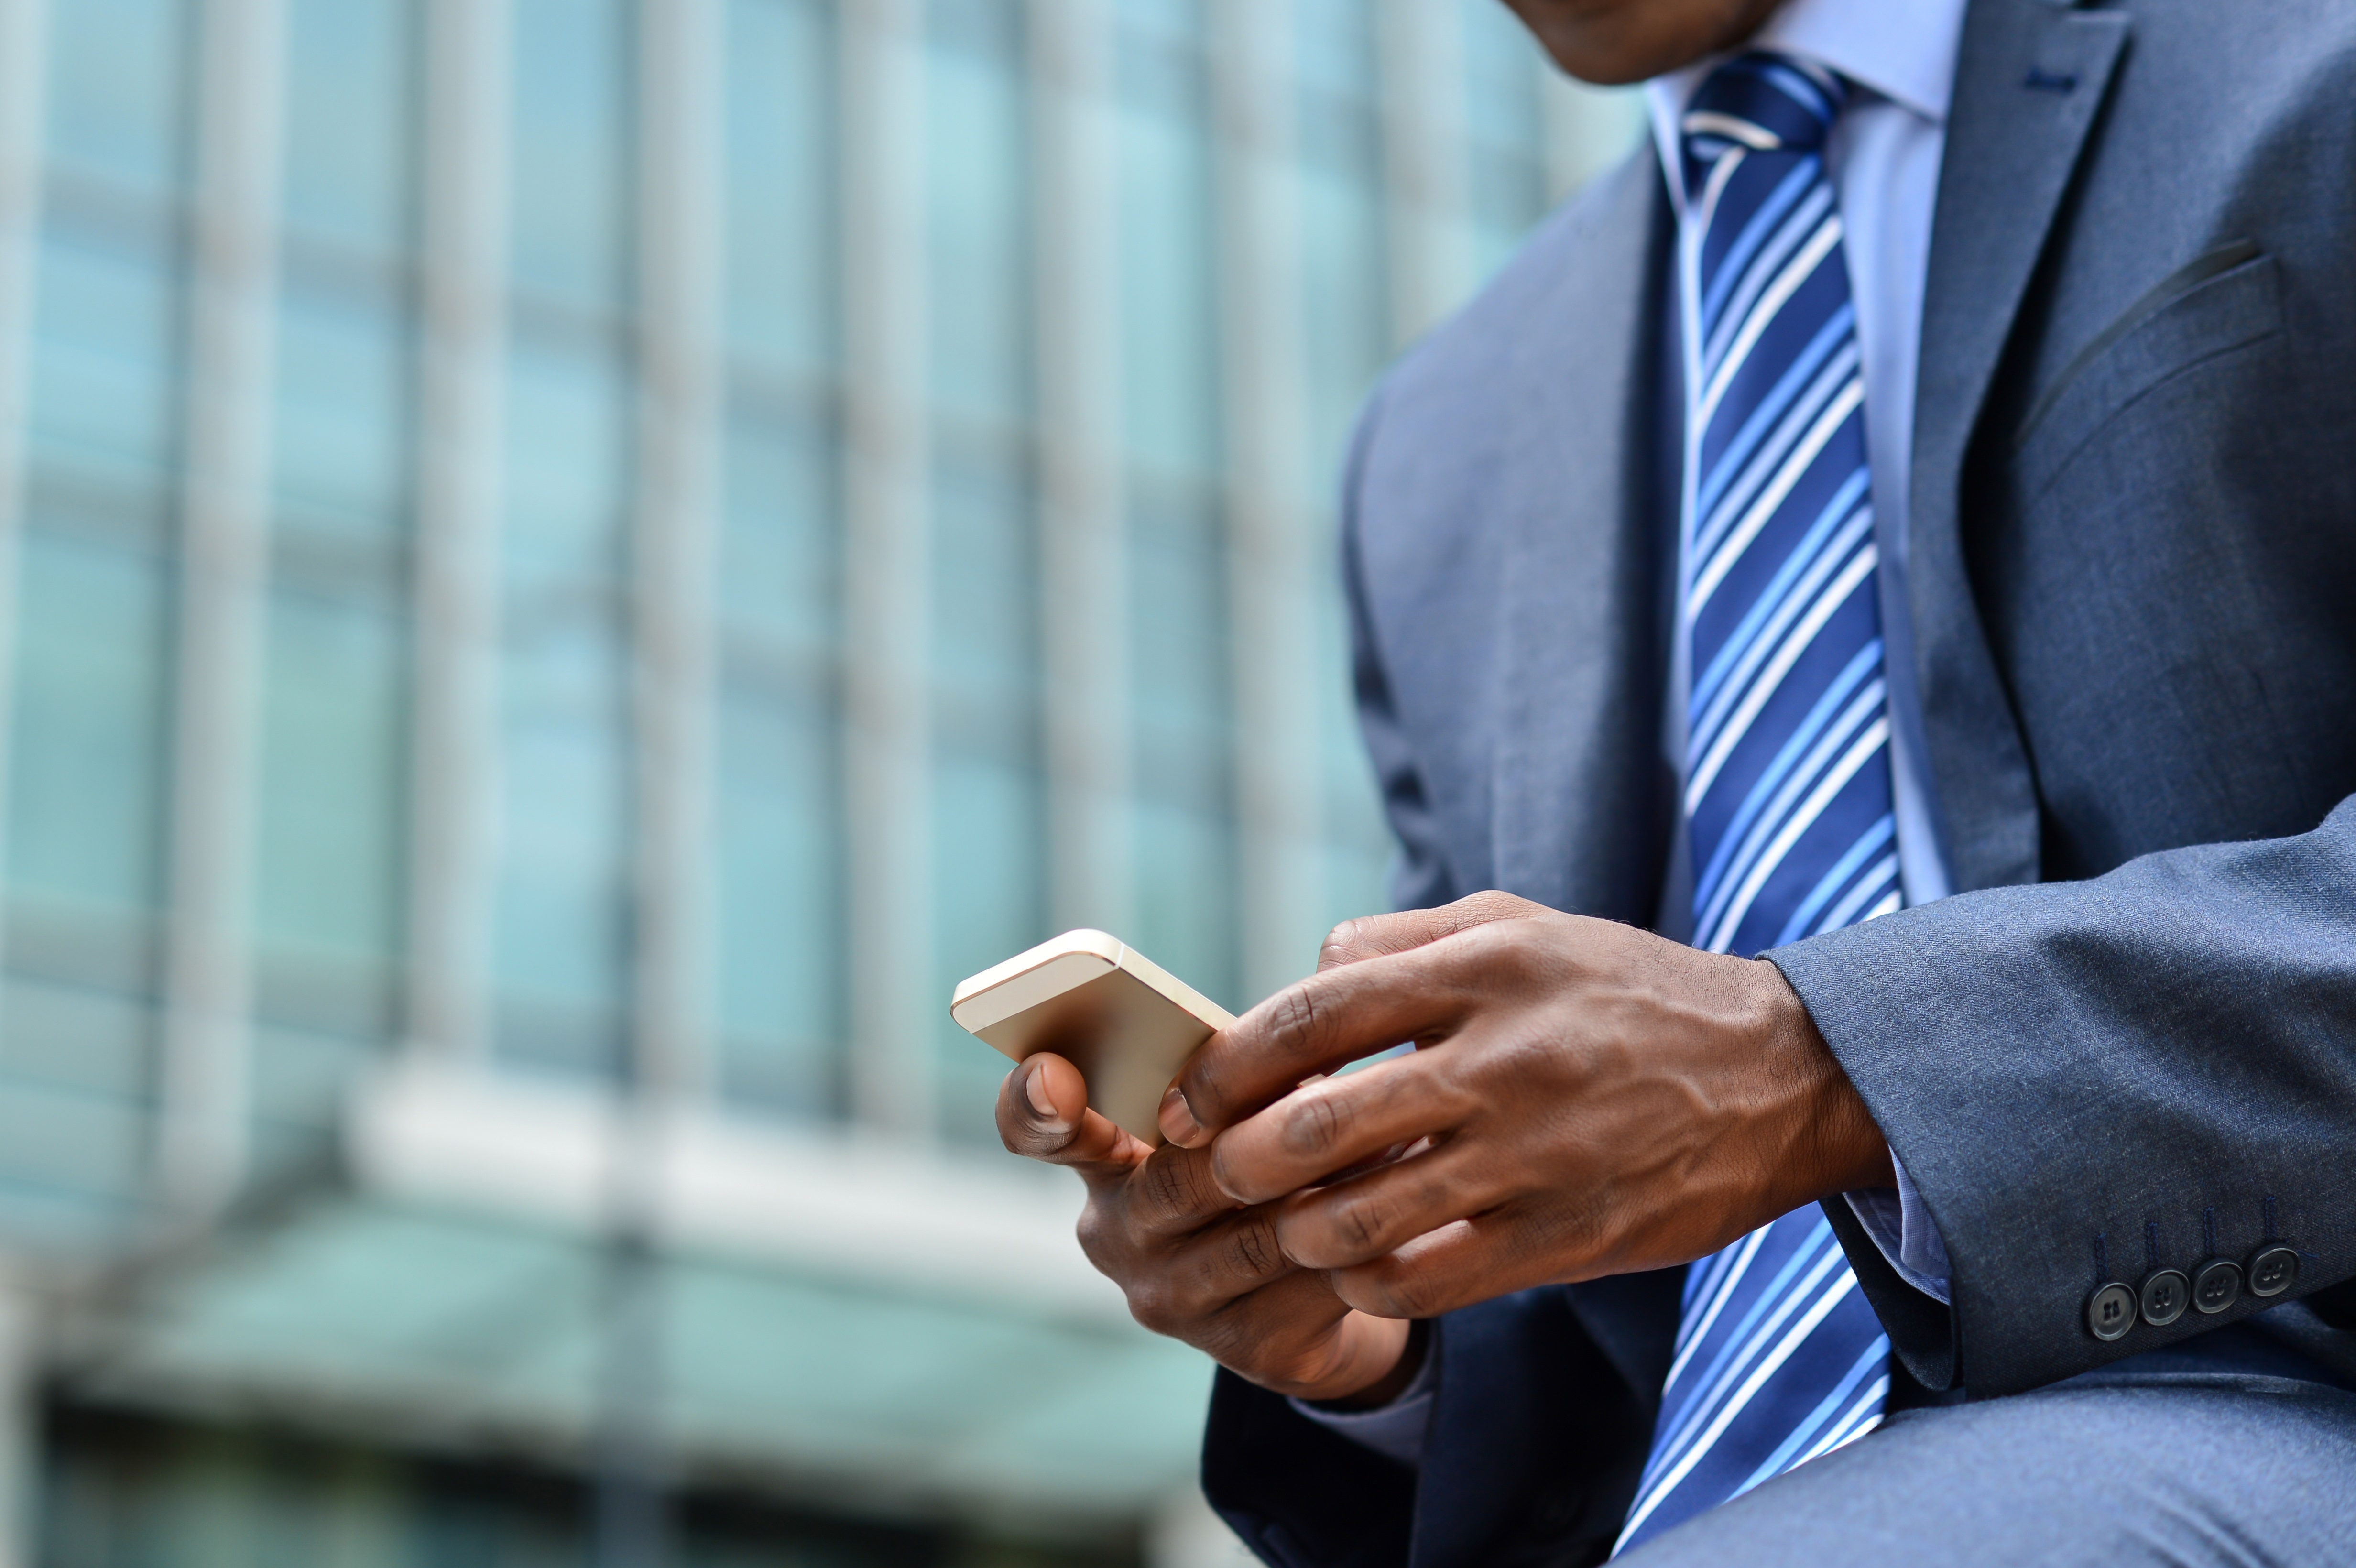 Business man in blue tie outside office building texting.jpg